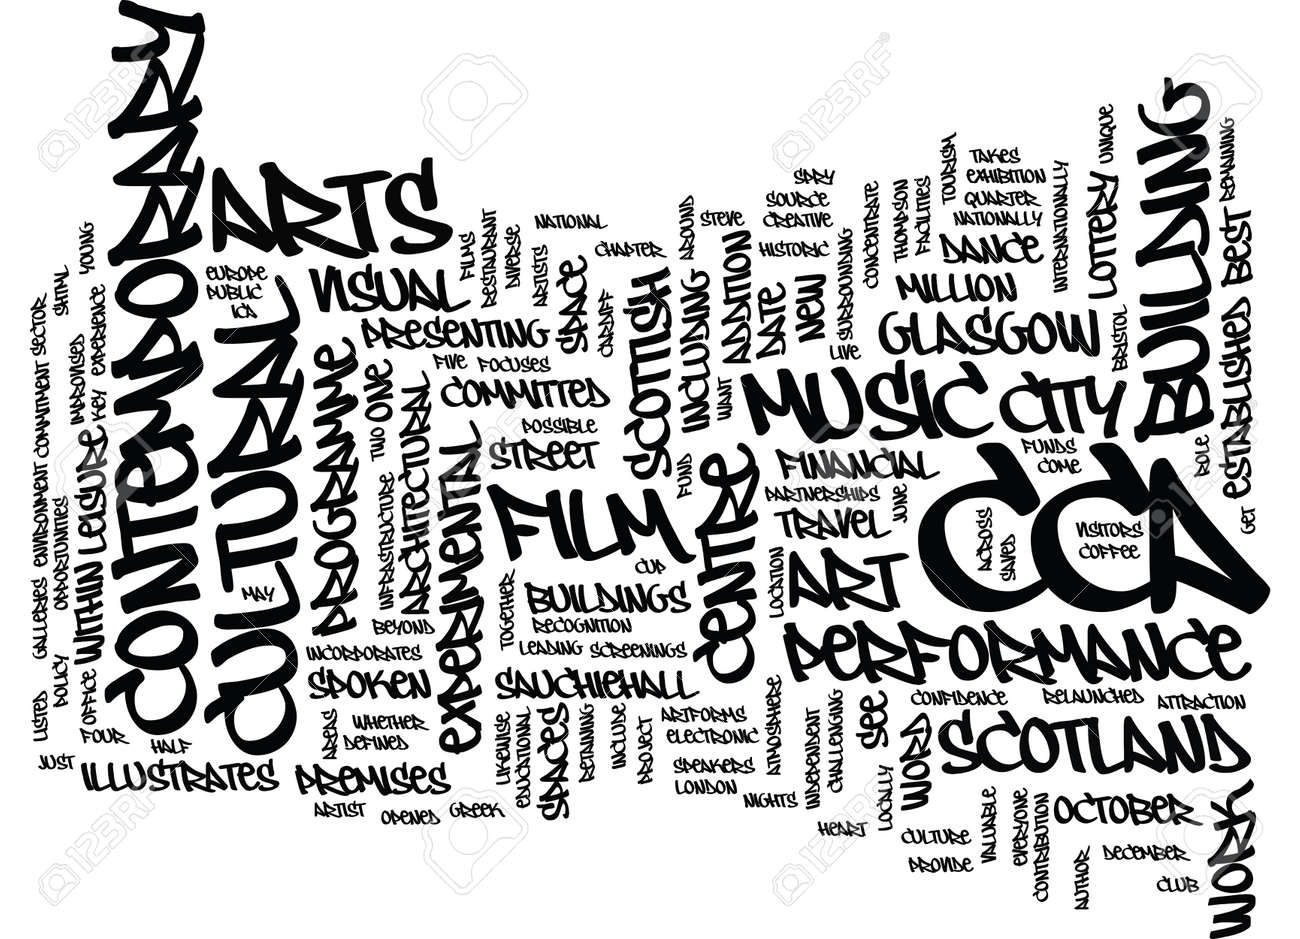 images?q=tbn:ANd9GcQh_l3eQ5xwiPy07kGEXjmjgmBKBRB7H2mRxCGhv1tFWg5c_mWT Ideas For Centre For Contemporary Arts Glasgow @koolgadgetz.com.info